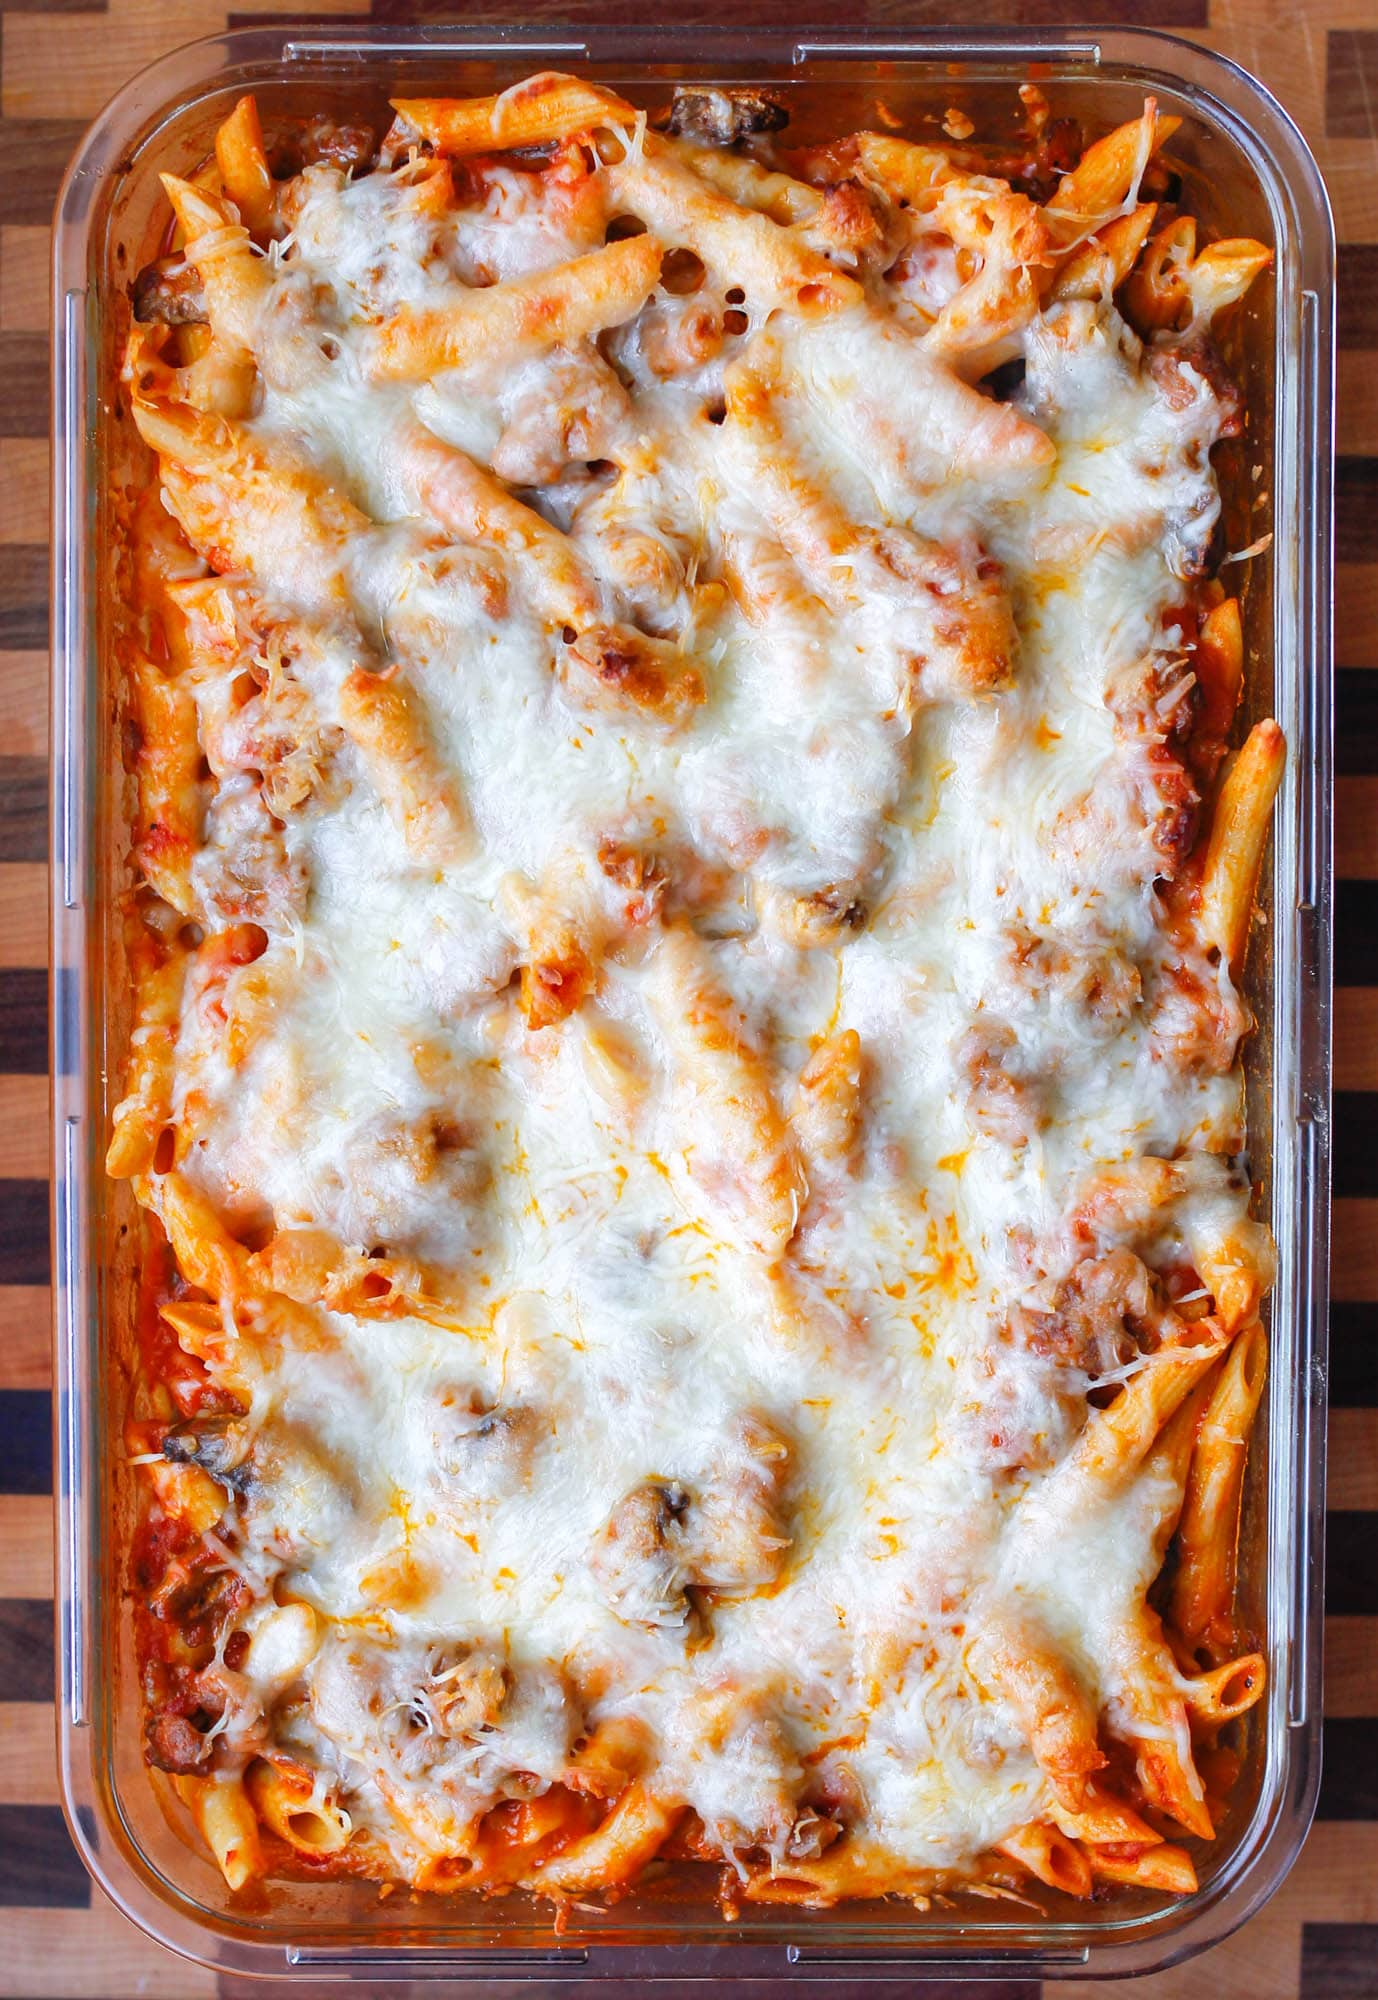 Gluten-Free Pasta Bake with Sausage and Mushrooms